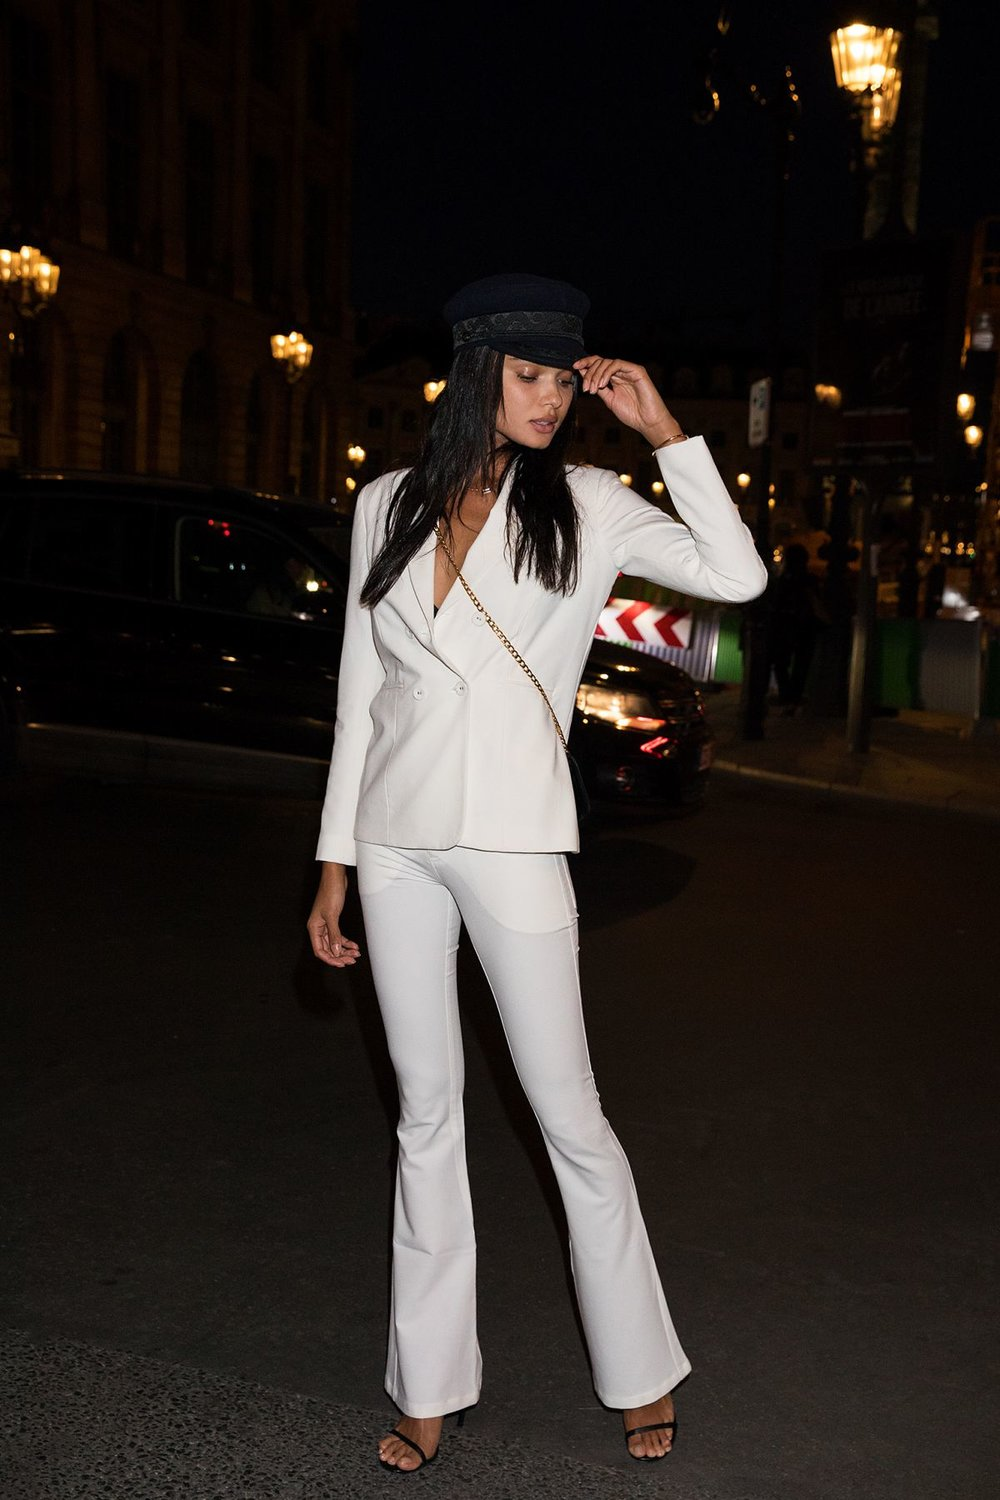 daniela-braga-is-seen-out-and-about-during-the-spring-summer-2018-paris-fashion-week-in-paris-3.jpg